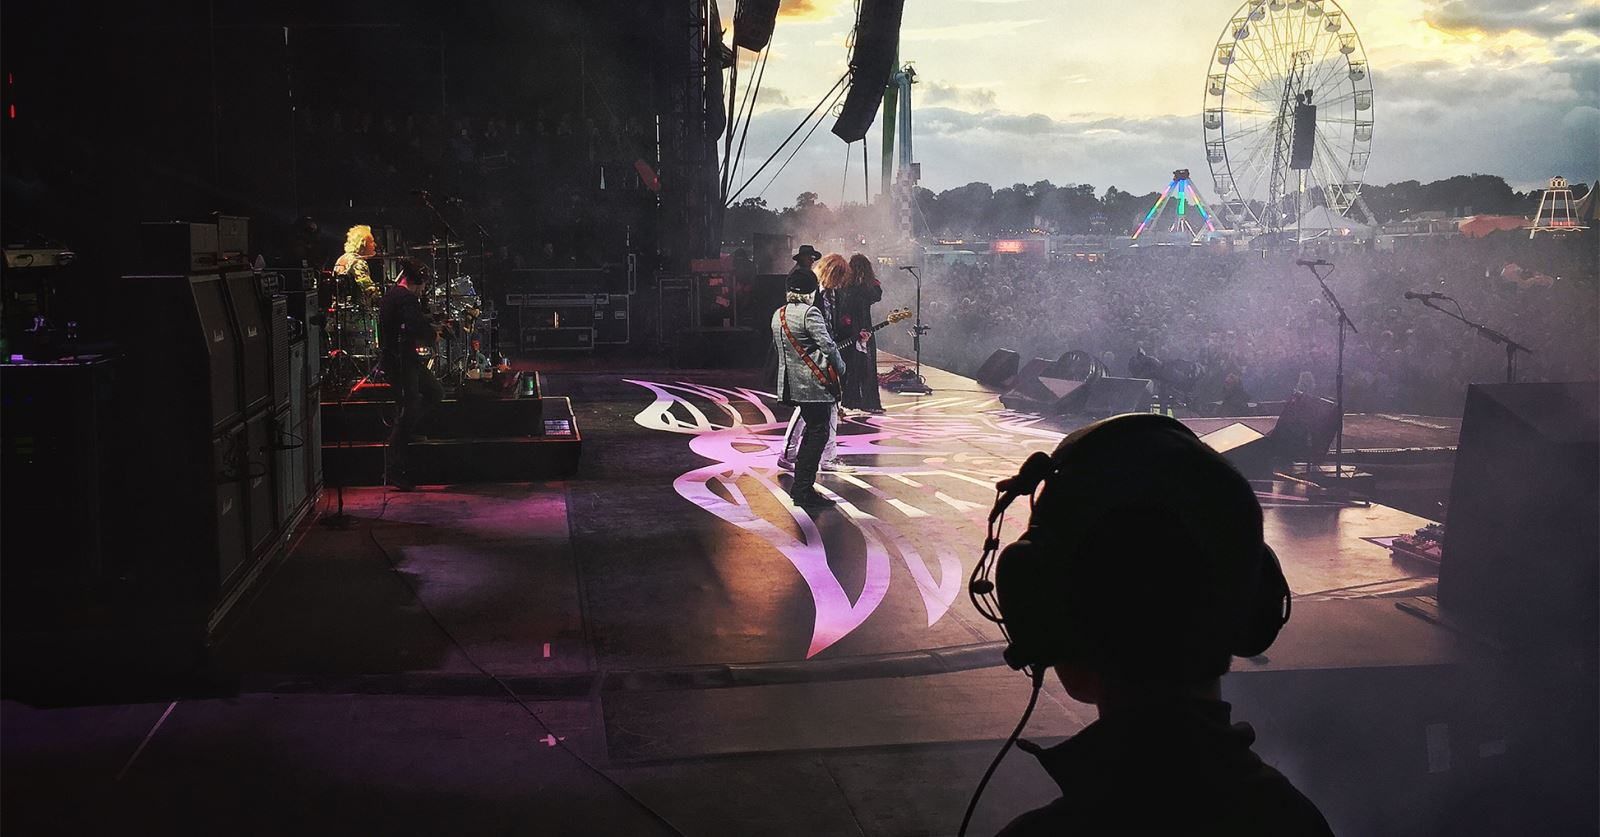 View from the wings for new GTC member Anna Lucia Sadler: Aerosmith at Download Festival, photo by Steve Angell